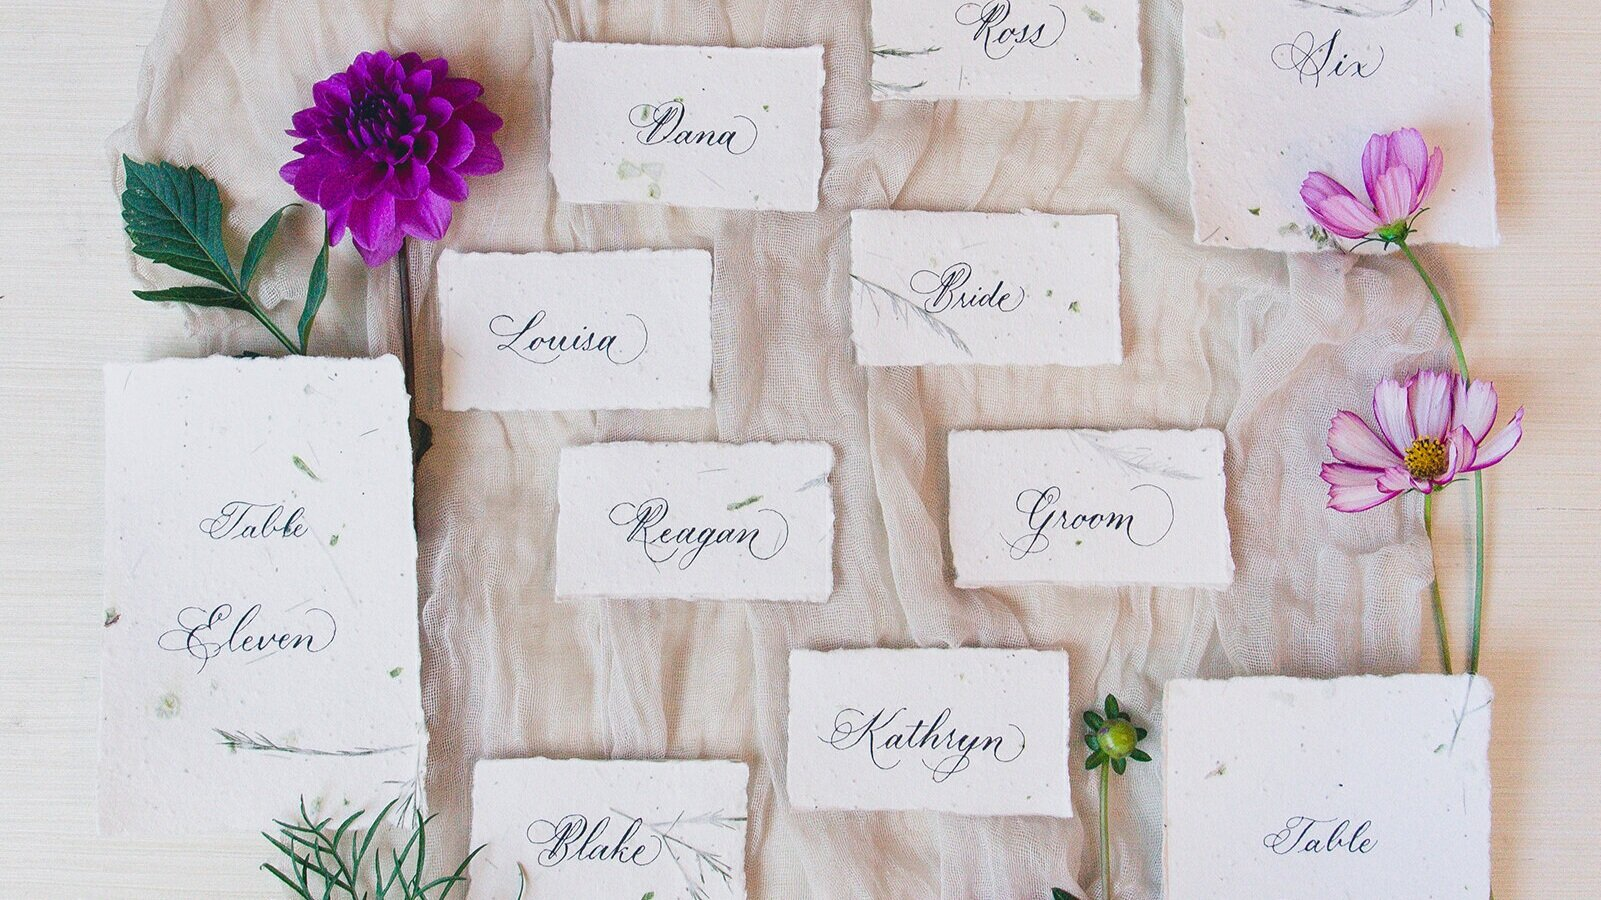 Handmade paper with flower seeds and copperplate calligraphy